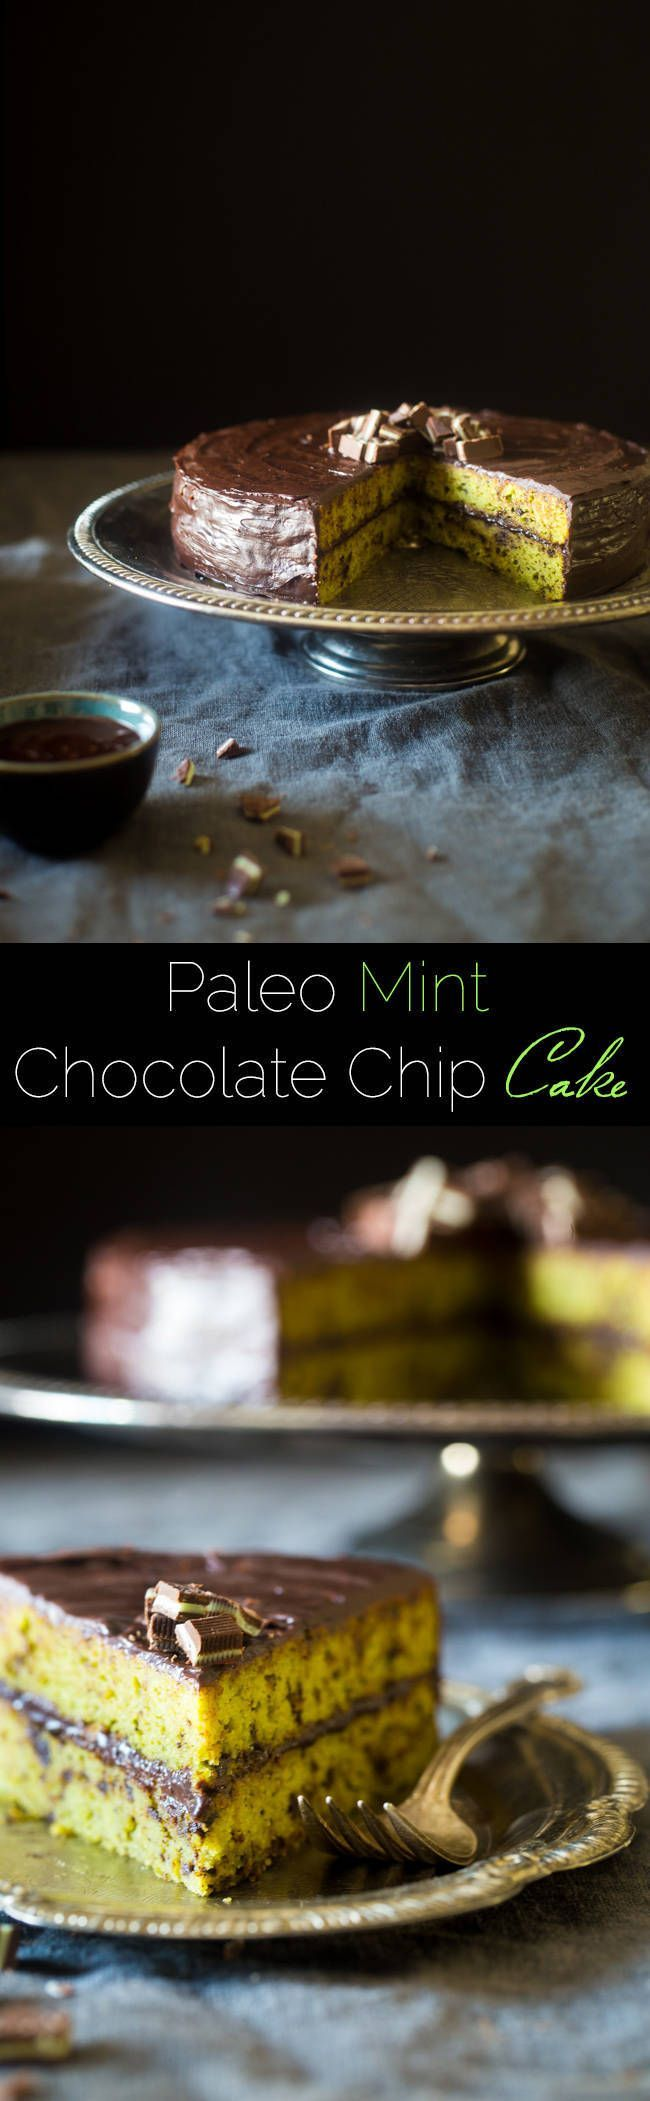 best Paleo Chocolate Recipes images on Pinterest Paleo